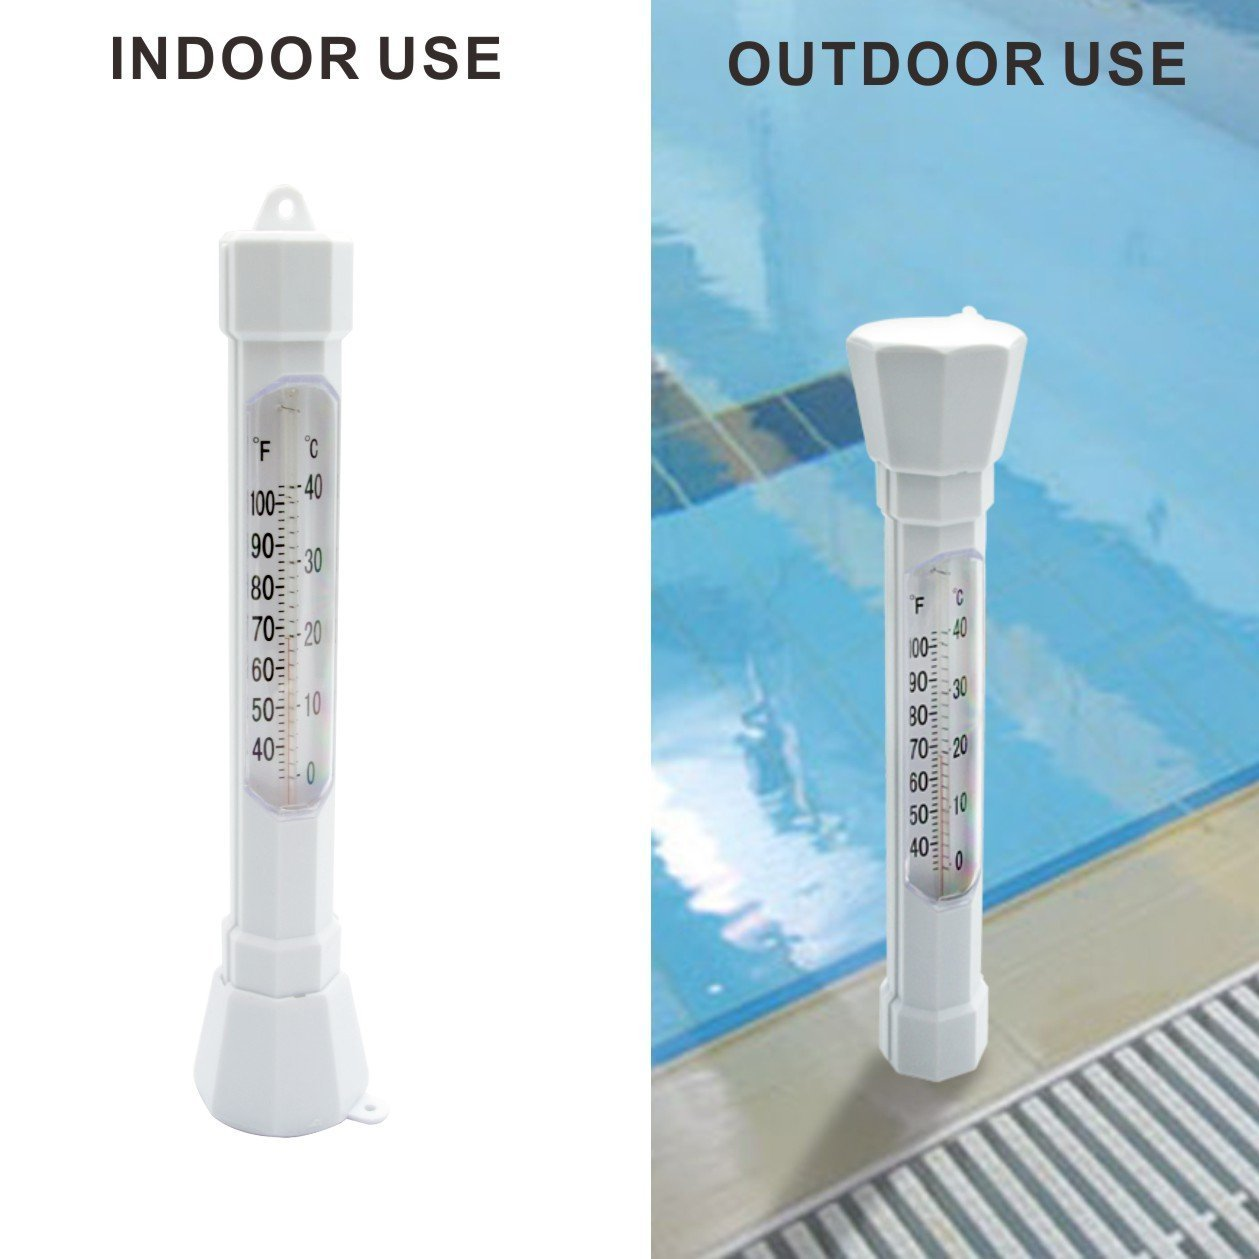 Premium Water Temperature Thermometers with Jumbo Read Display Perfect for Outdoor /& Indoor Swimming Pools Fish Ponds Spas Bath Hot Tubs Warmoor Large Floating Pool Thermometer